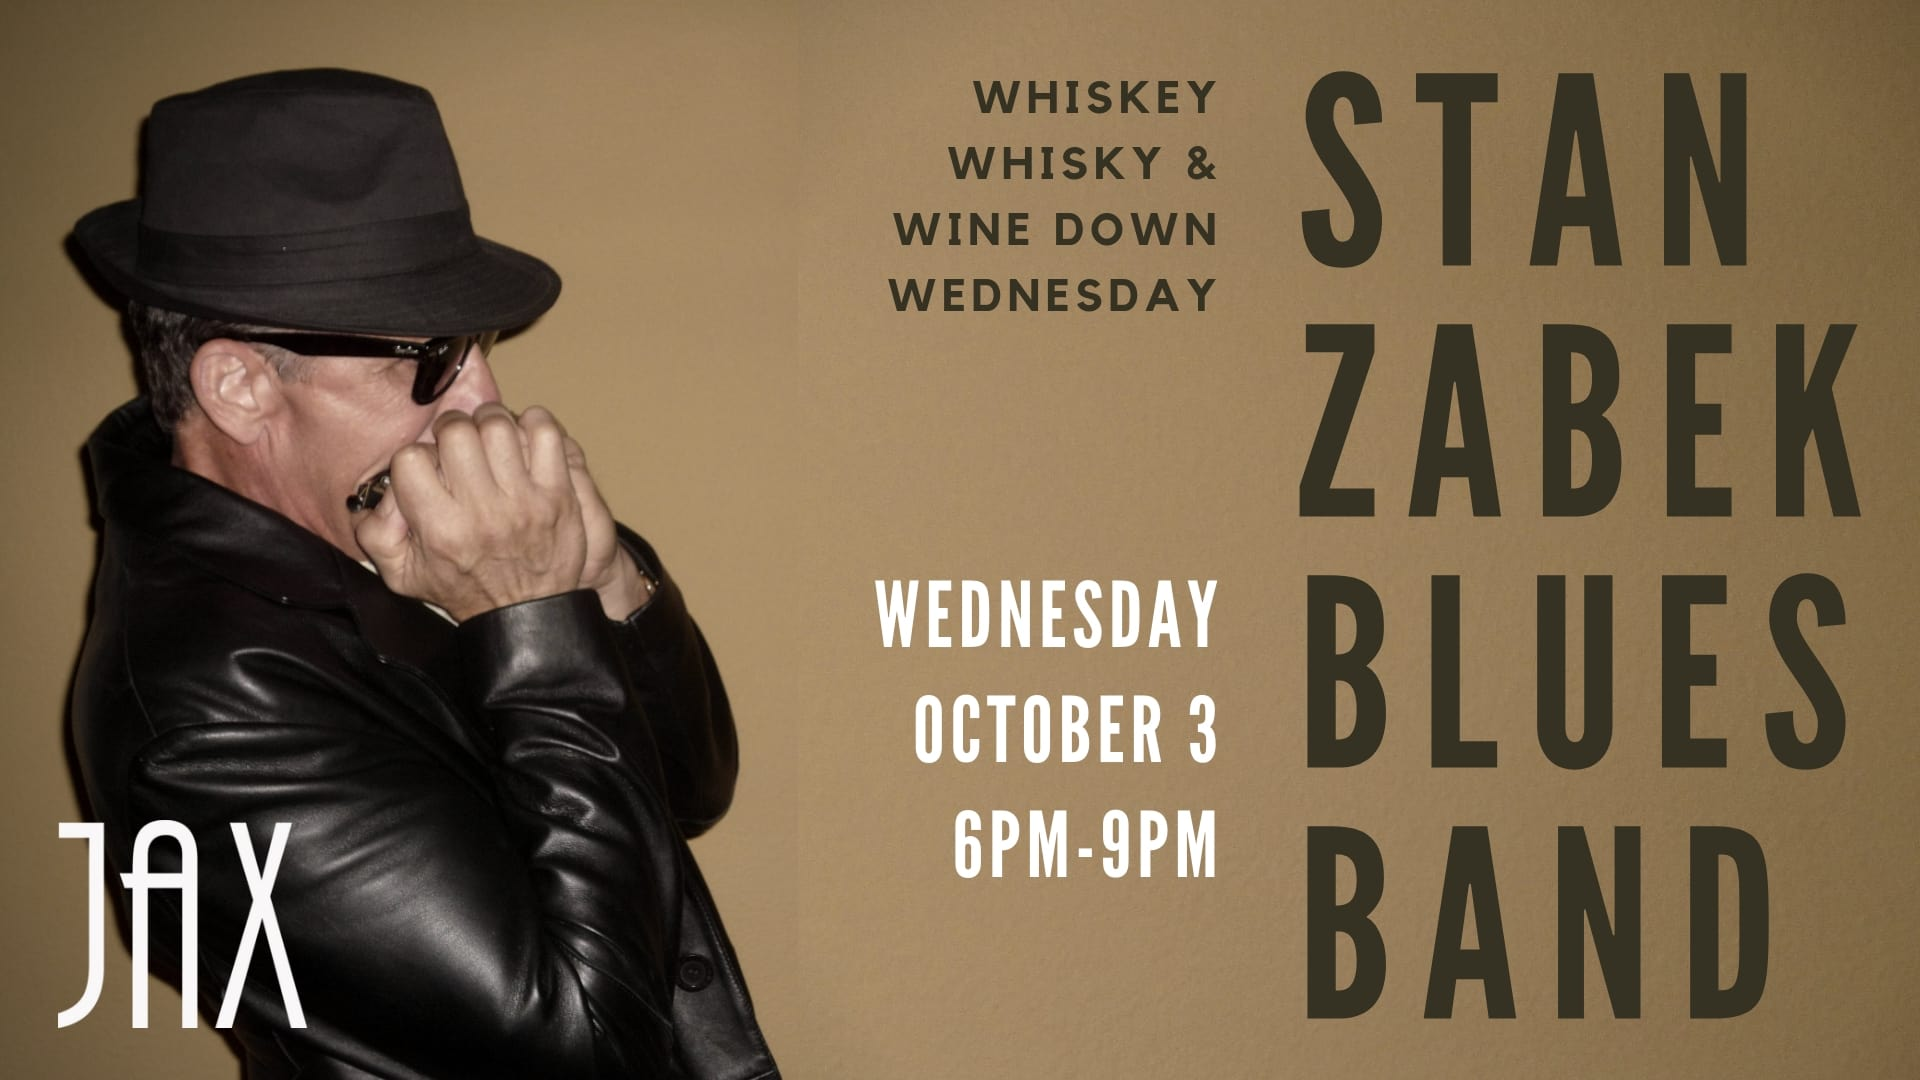 October 3 | WHISKEY WHISKY & WINE DOWN WEDNESDAY with THE STAN ZABEK BLUES BAND